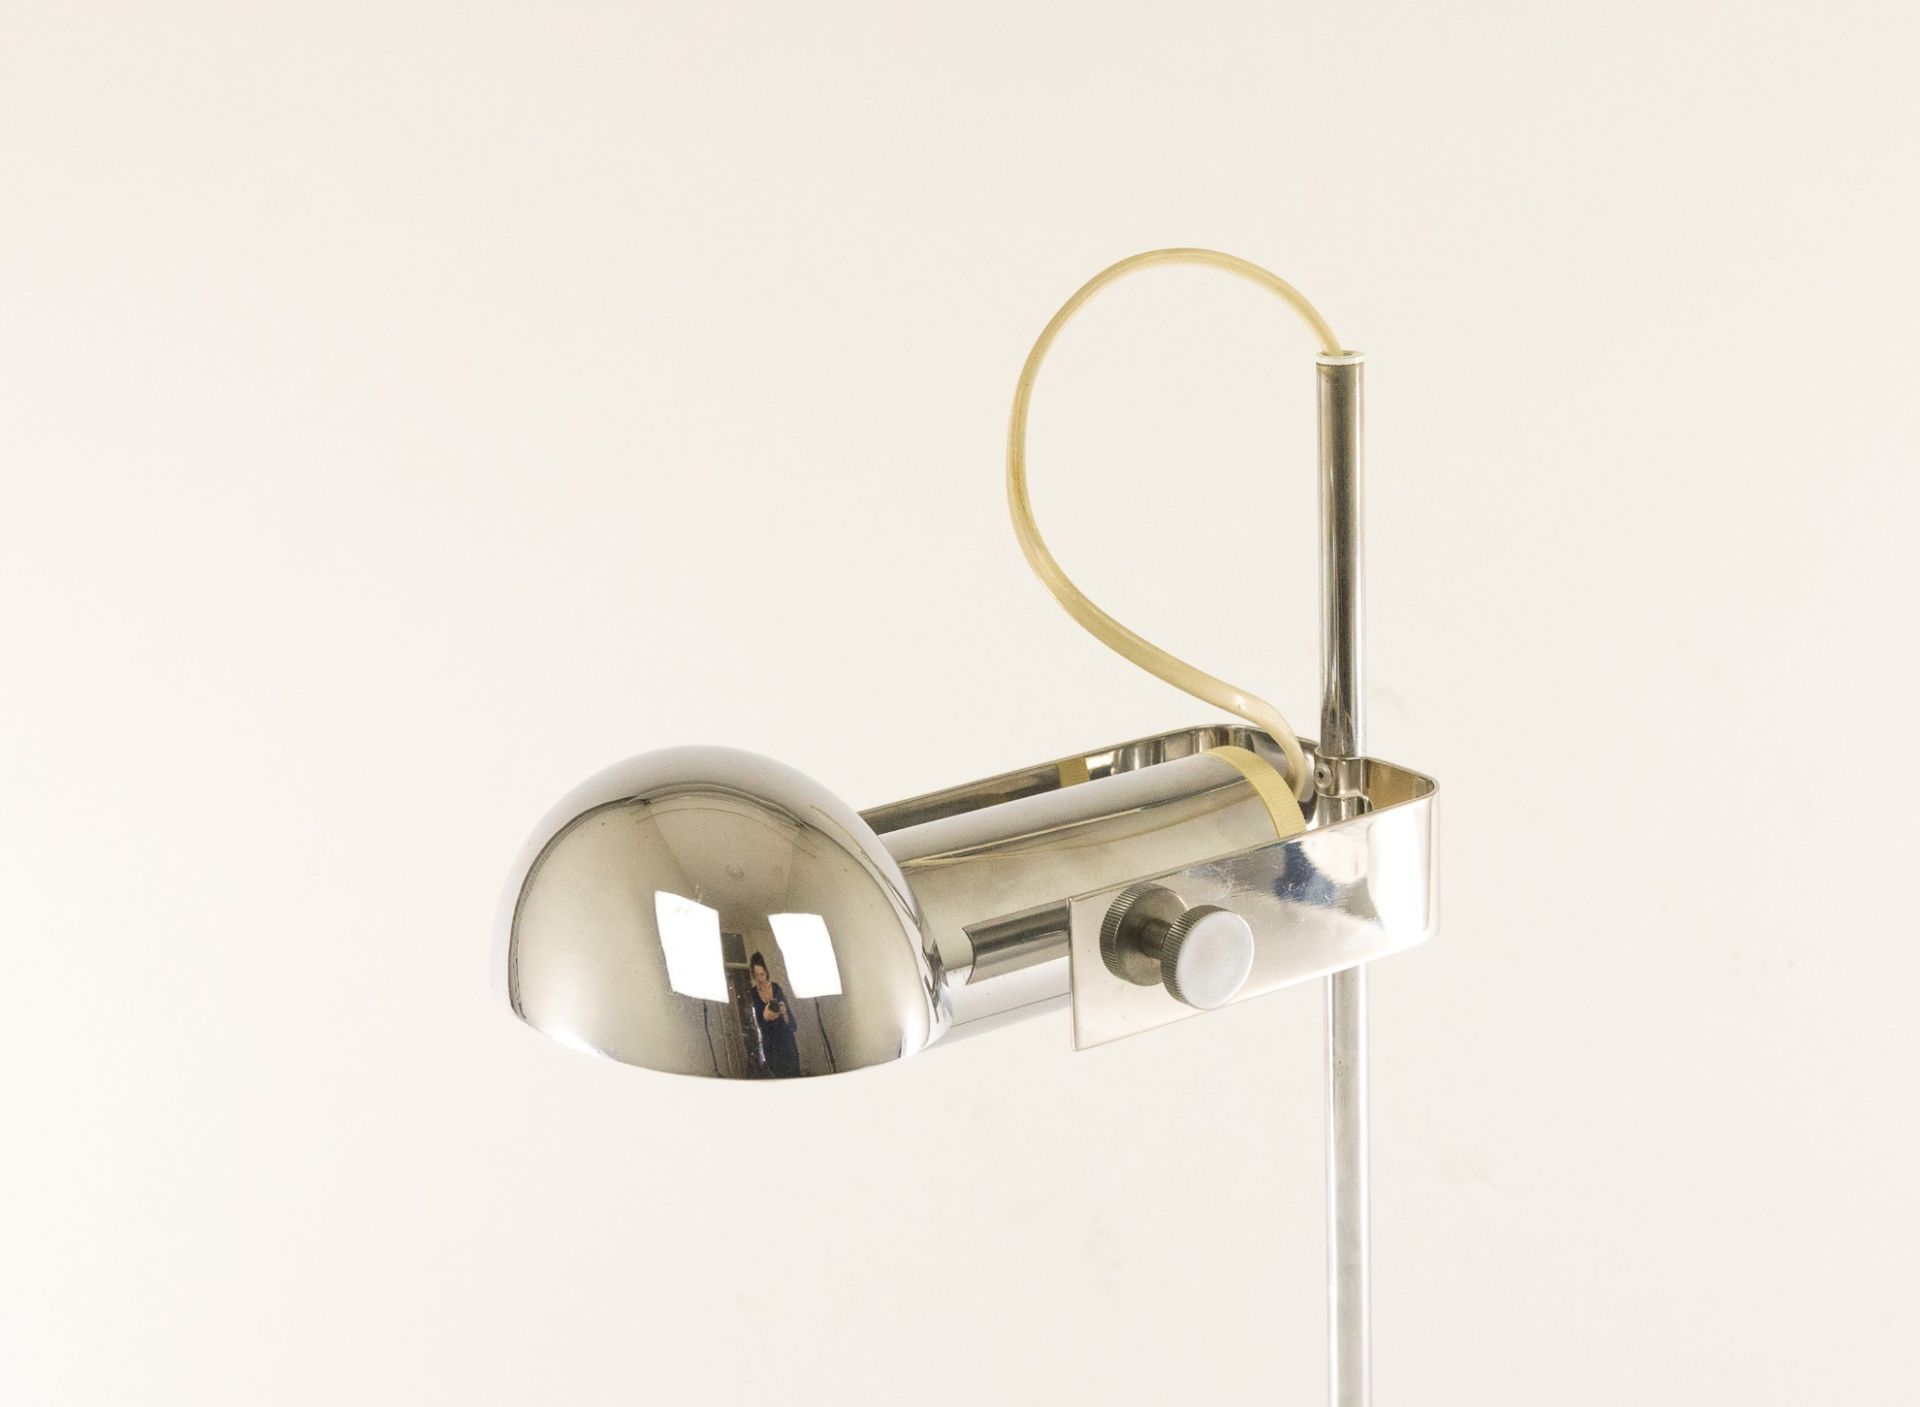 Adjustable T395 table lamp by Robert Sonneman for Luci Cinisello, 1970s